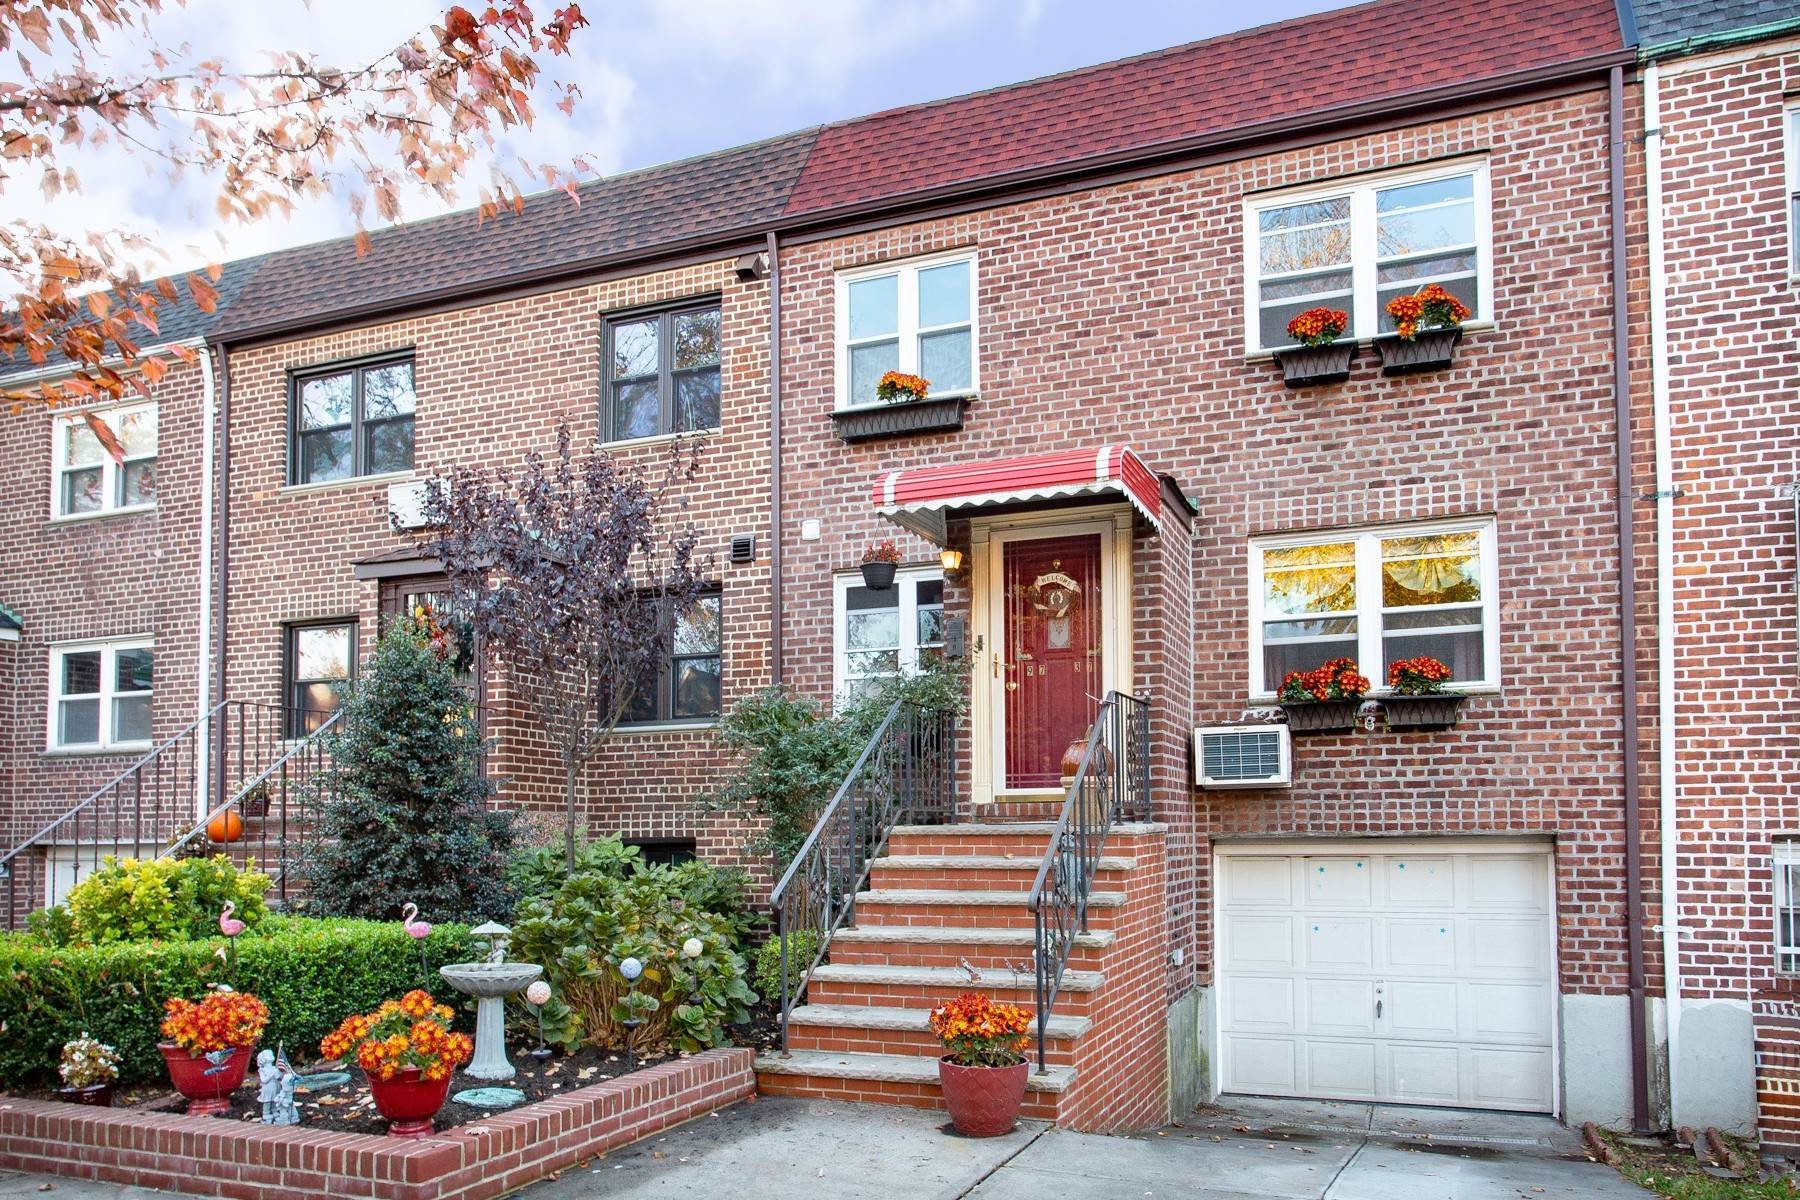 townhouses por un Venta en 'PICTURE PERFECT PARKSIDE TWO FAMILY WITH GARDEN OASIS' 97-37 72nd Drive, Forest Hills, Nueva York 11375 Estados Unidos